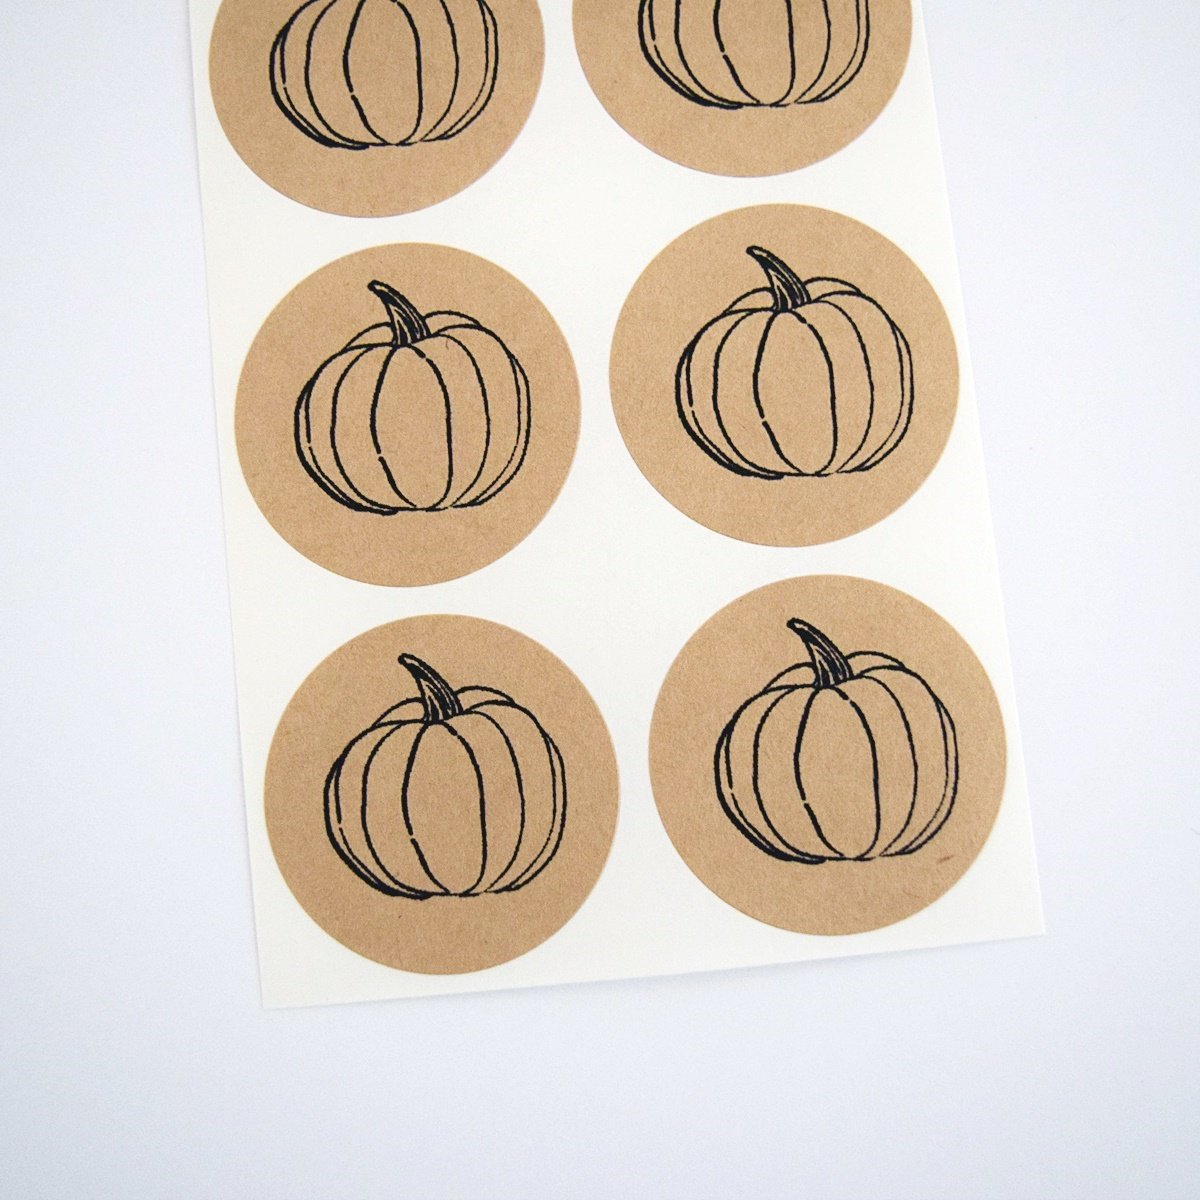 Pumpkin Stickers, Rustic Round Envelope Seals and Labels by Once Upon Supplies, for Autumn Themed Parties, 1.5'', 30 Stickers